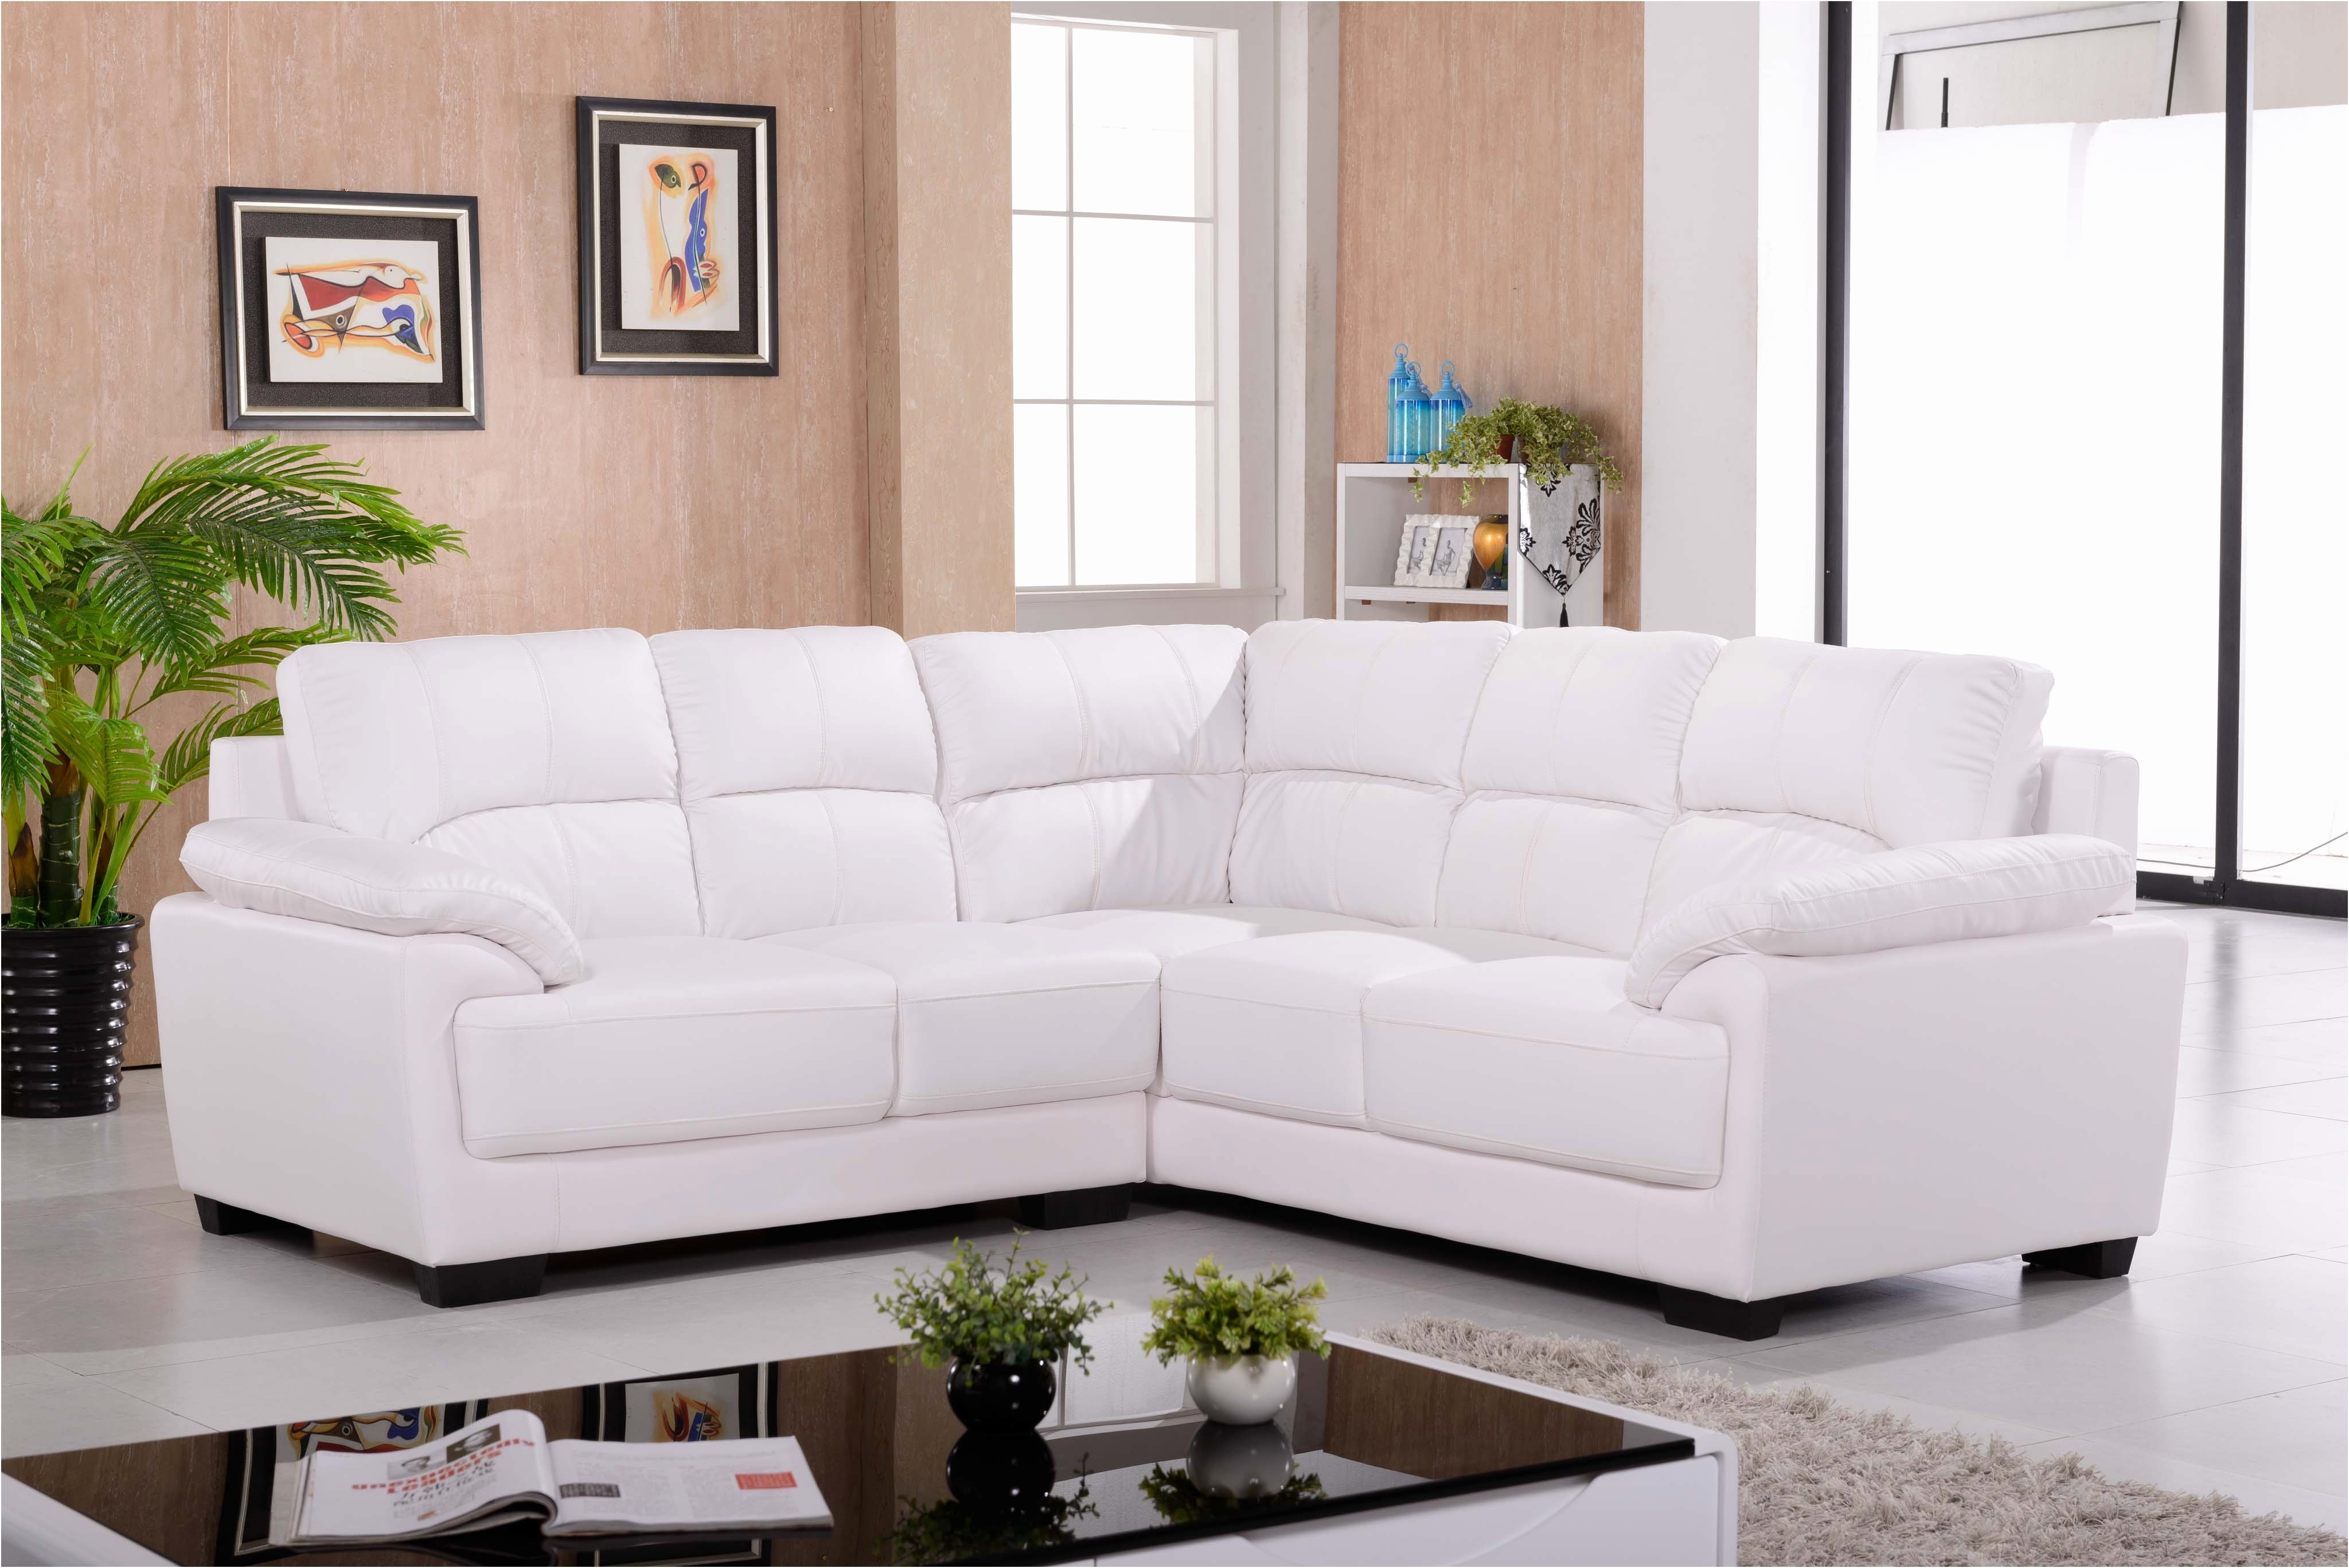 Popular Canada Sale Sectional Sofas In Sofas Awesome White Leather Loveseat Gray Sectional Sofa Canada (View 4 of 20)